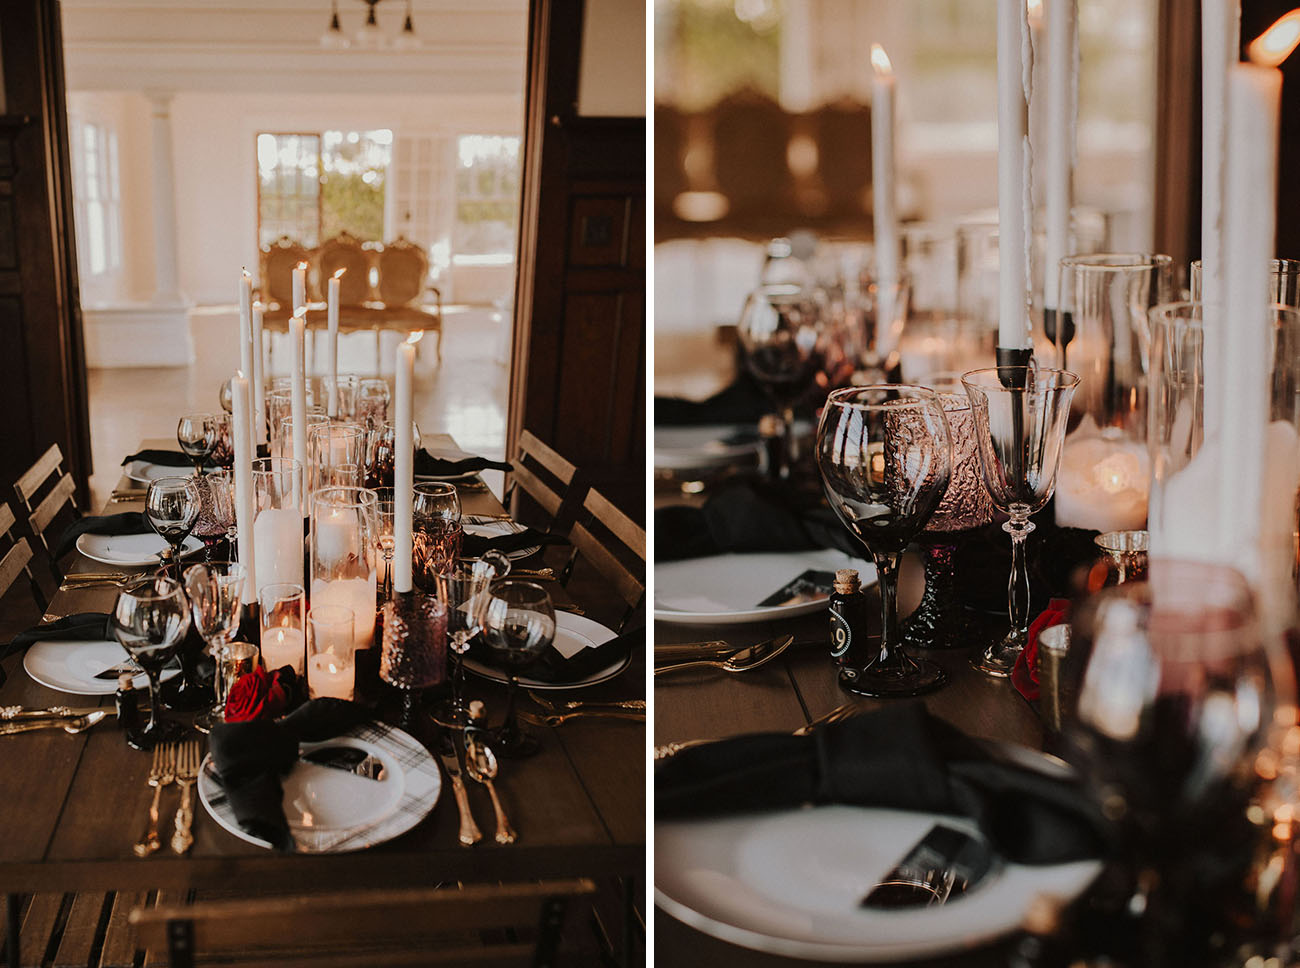 The reception was deep dark   with lots of pillar and tall and thin candles, black napkins, burgundy blooms and chic cutlery